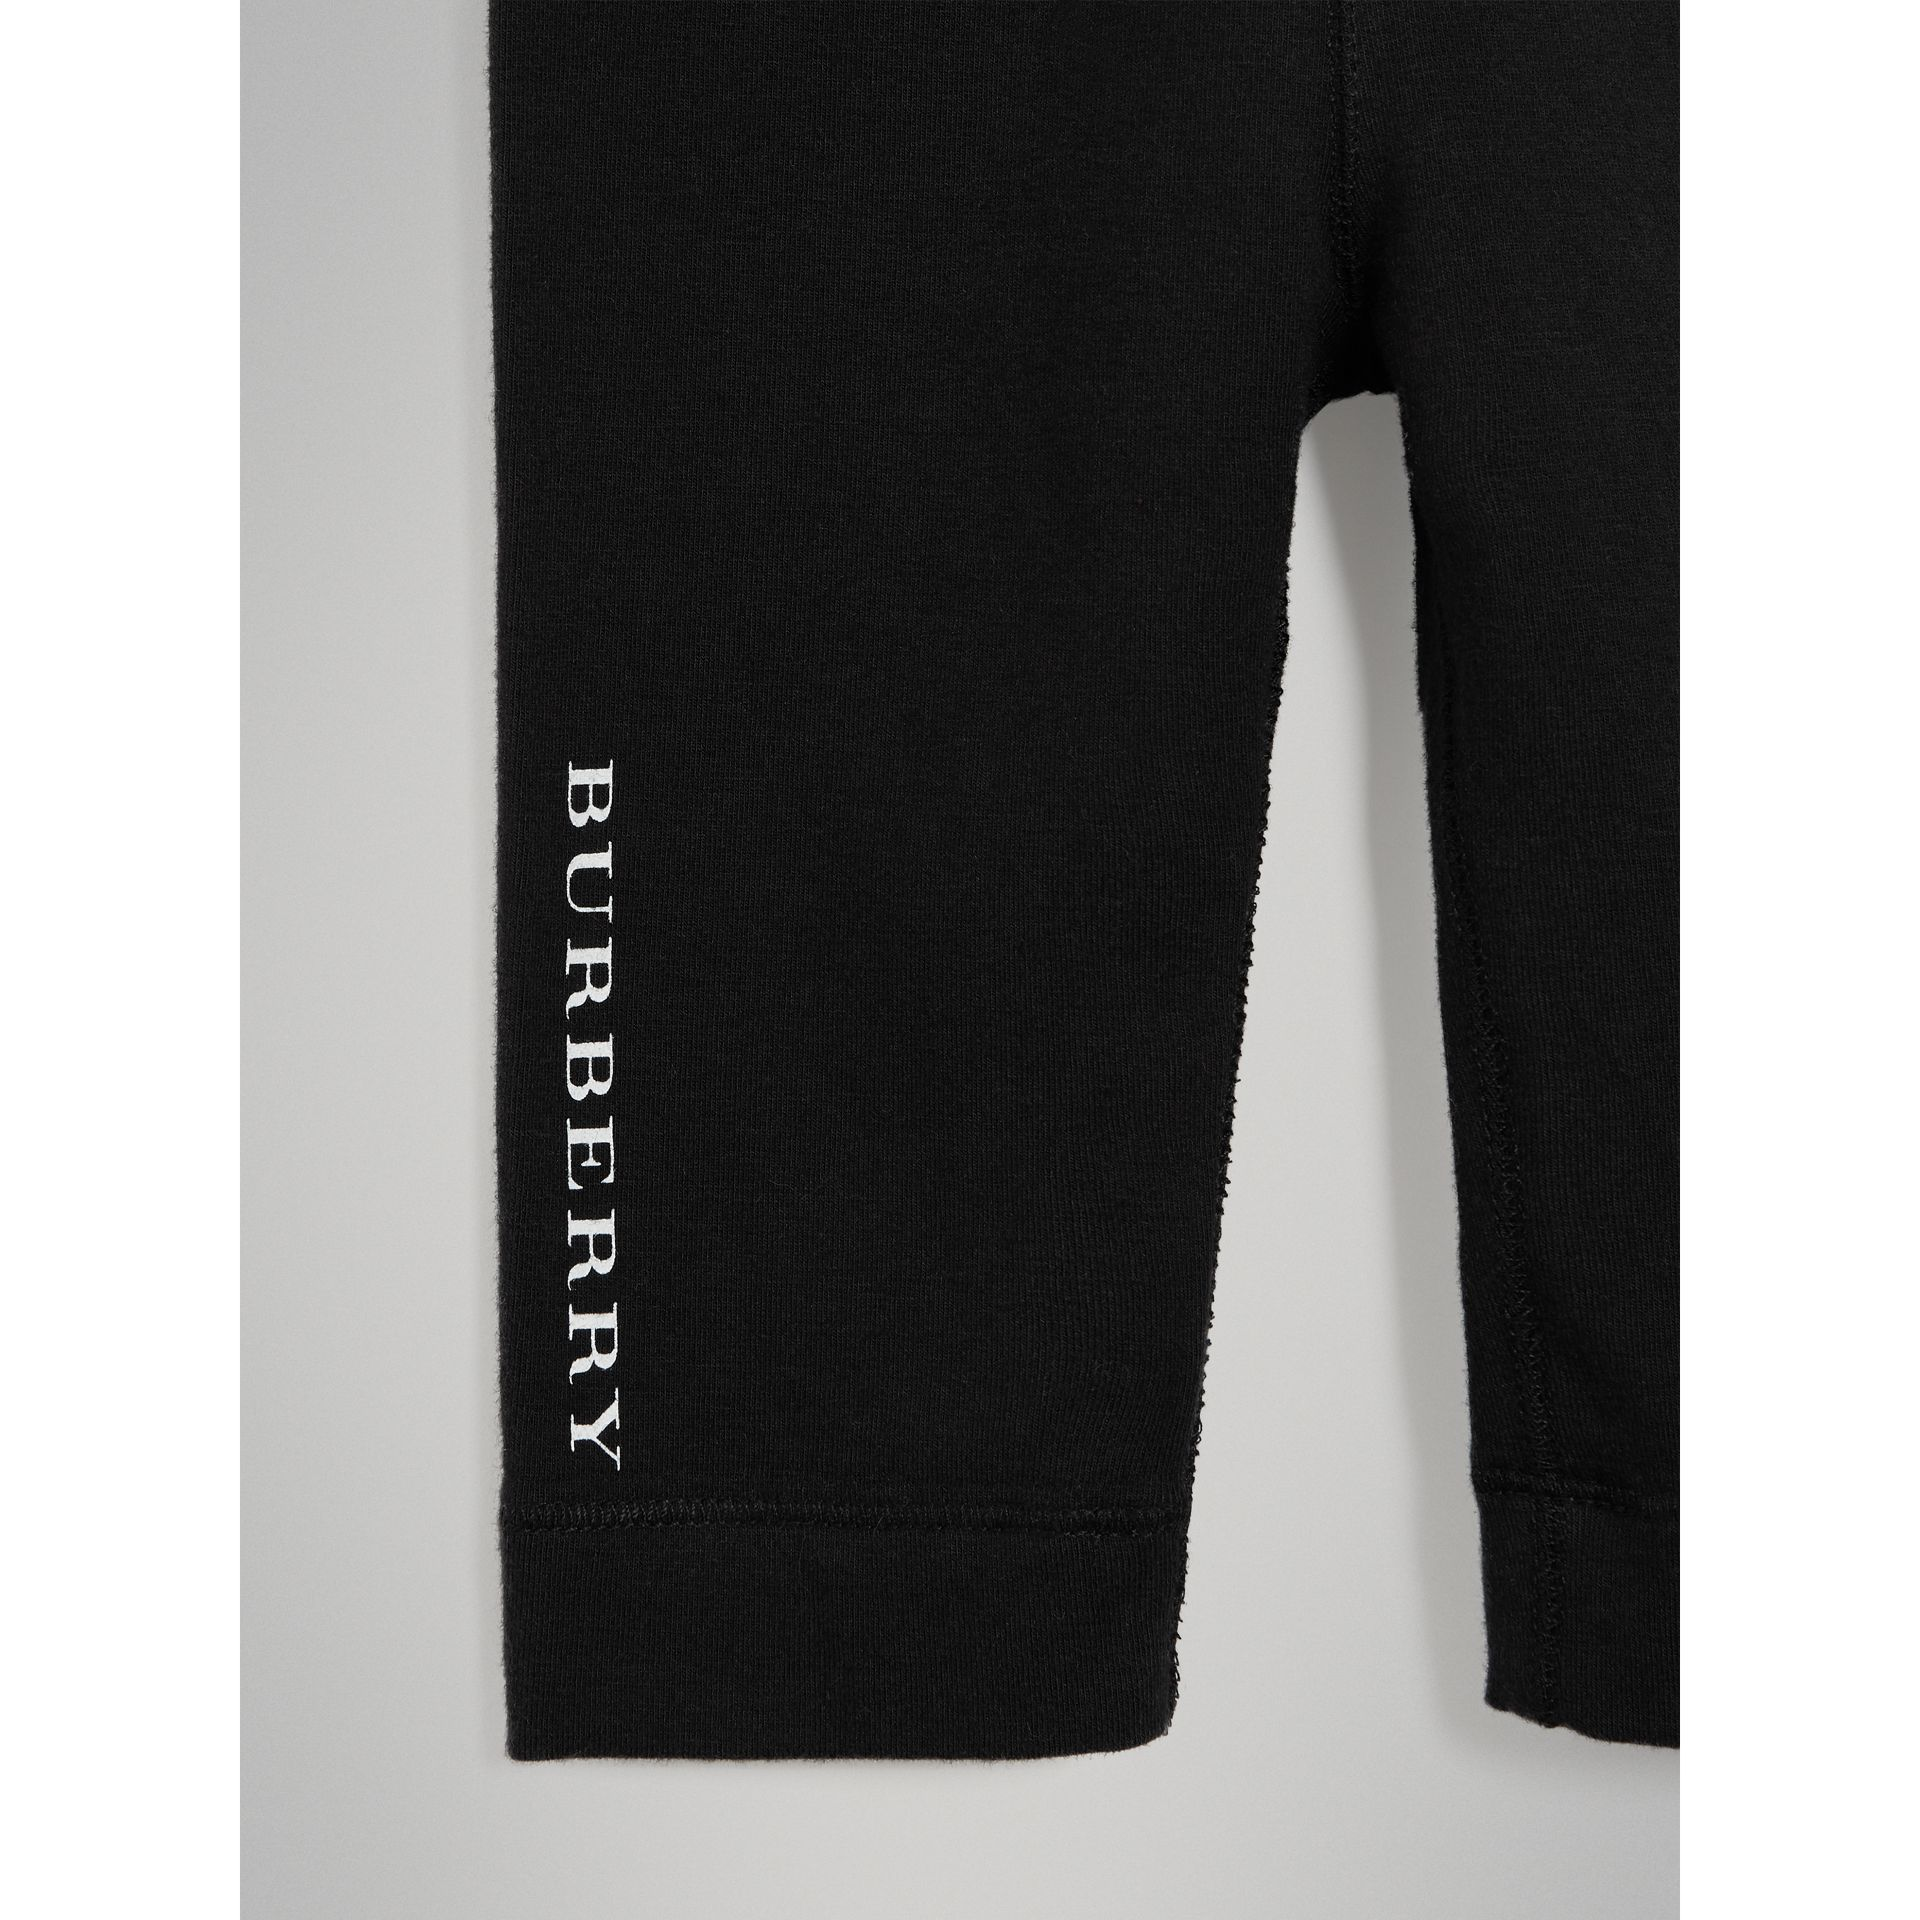 Legging en coton extensible avec logo (Noir) - Enfant | Burberry - photo de la galerie 4